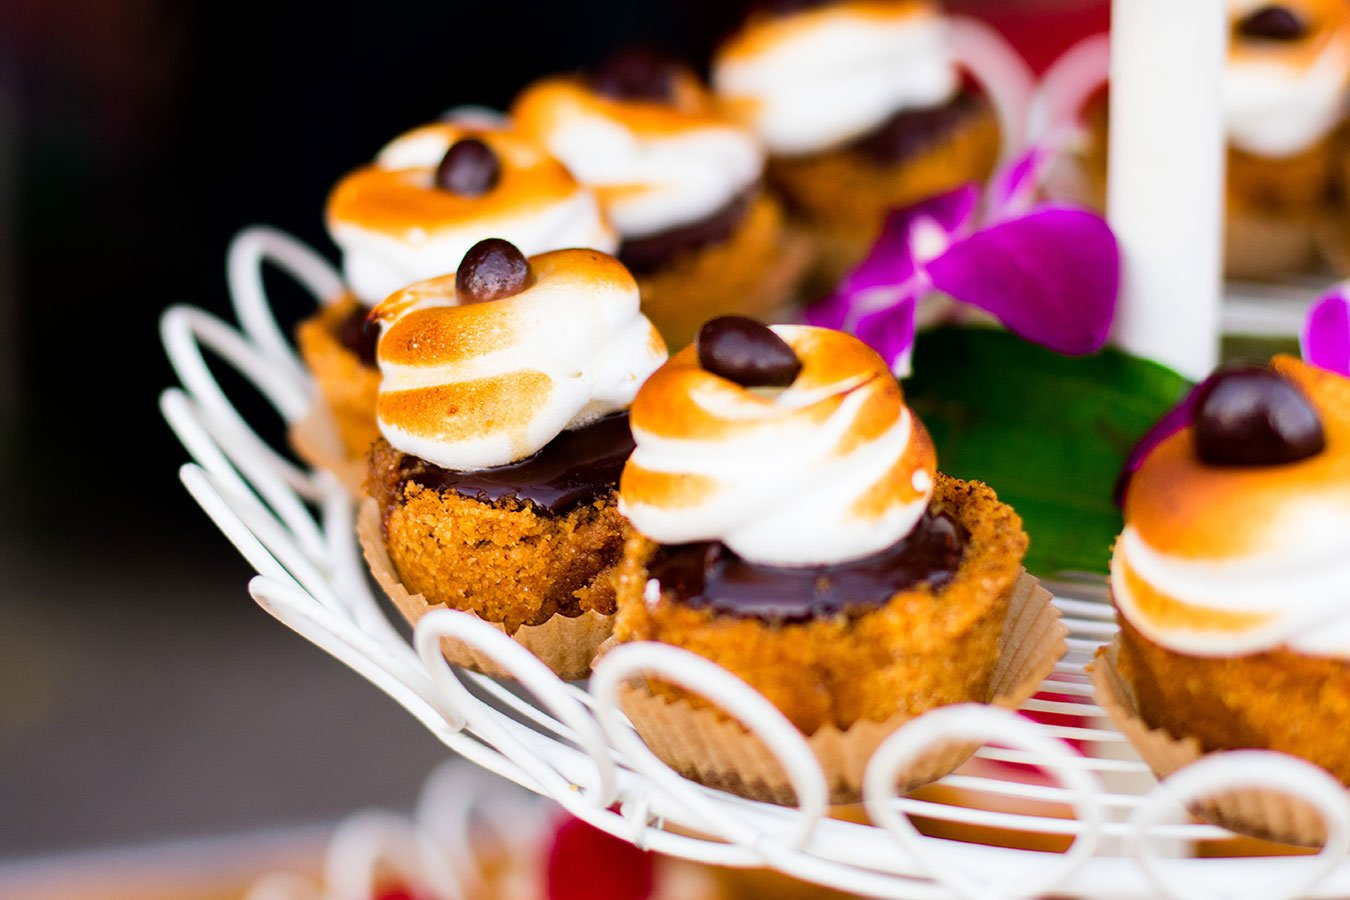 Catering Fort Lauderdale   Dessert   Chocolate Espresso S'mores Cup  FATVillage Arts District